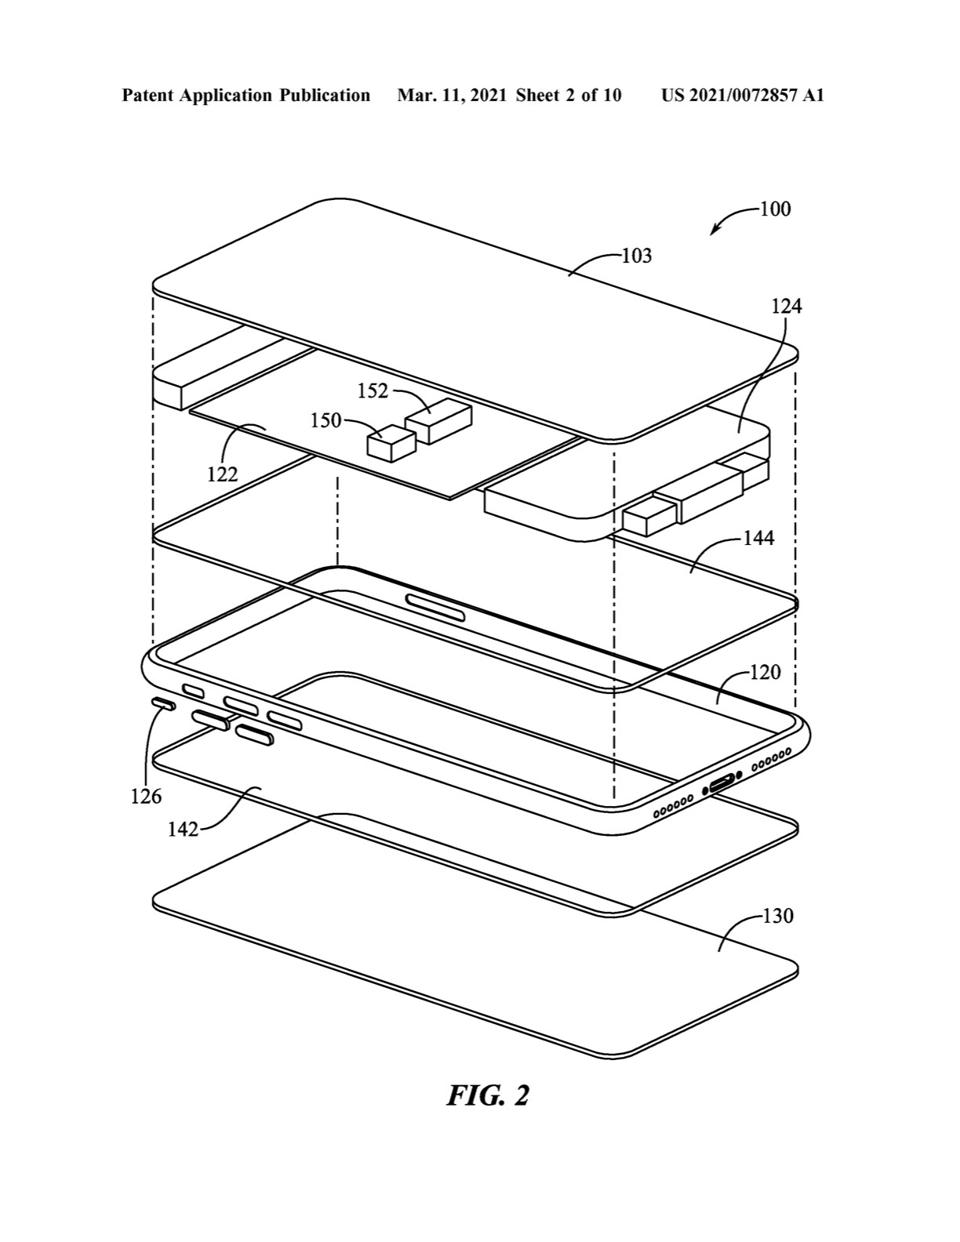 Part of the patent showing how a new version of 3D Touch might fit together.